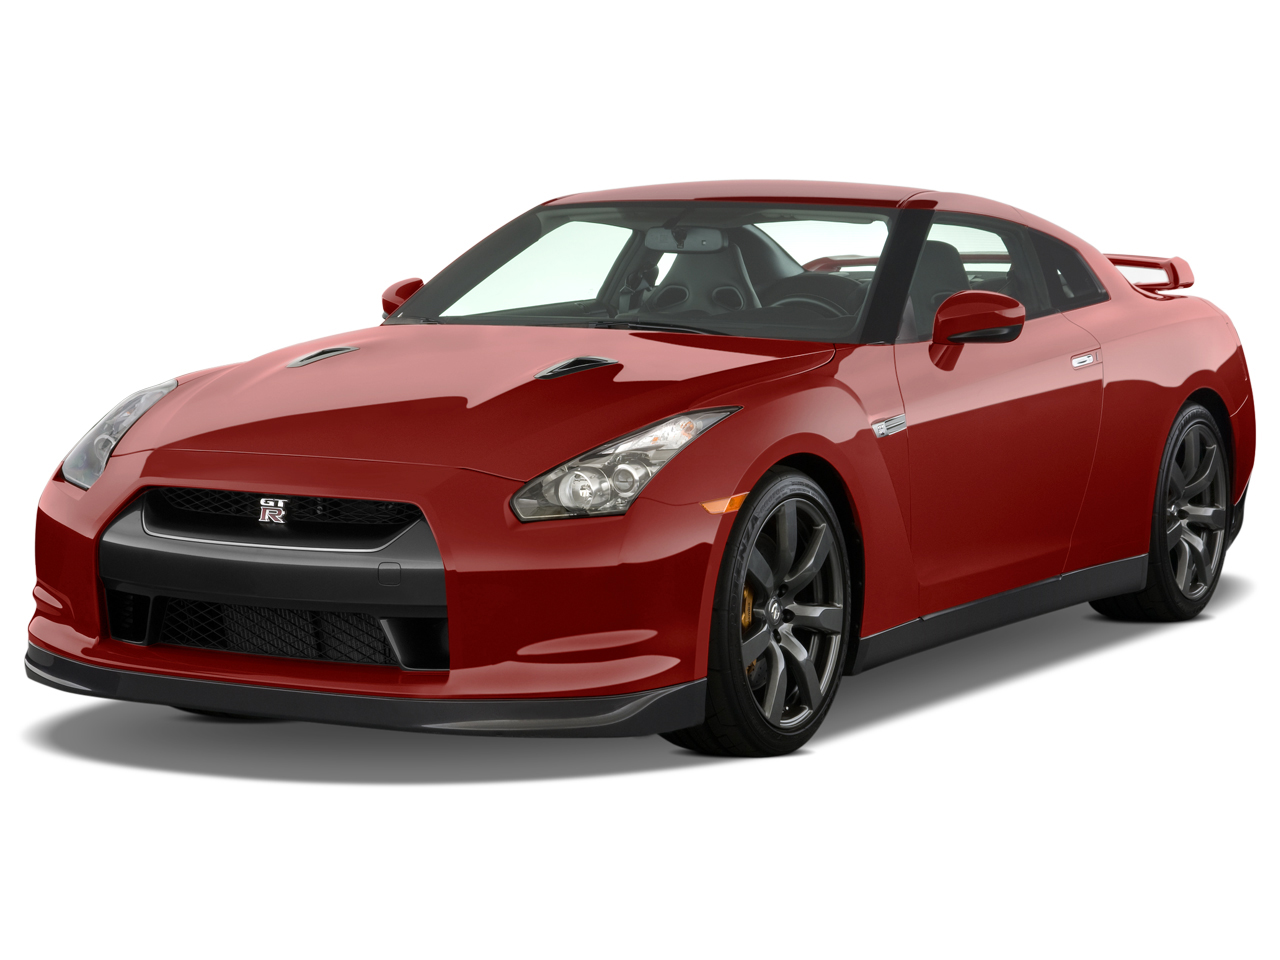 2010 Nissan Gt R Styling Review The Car Connection